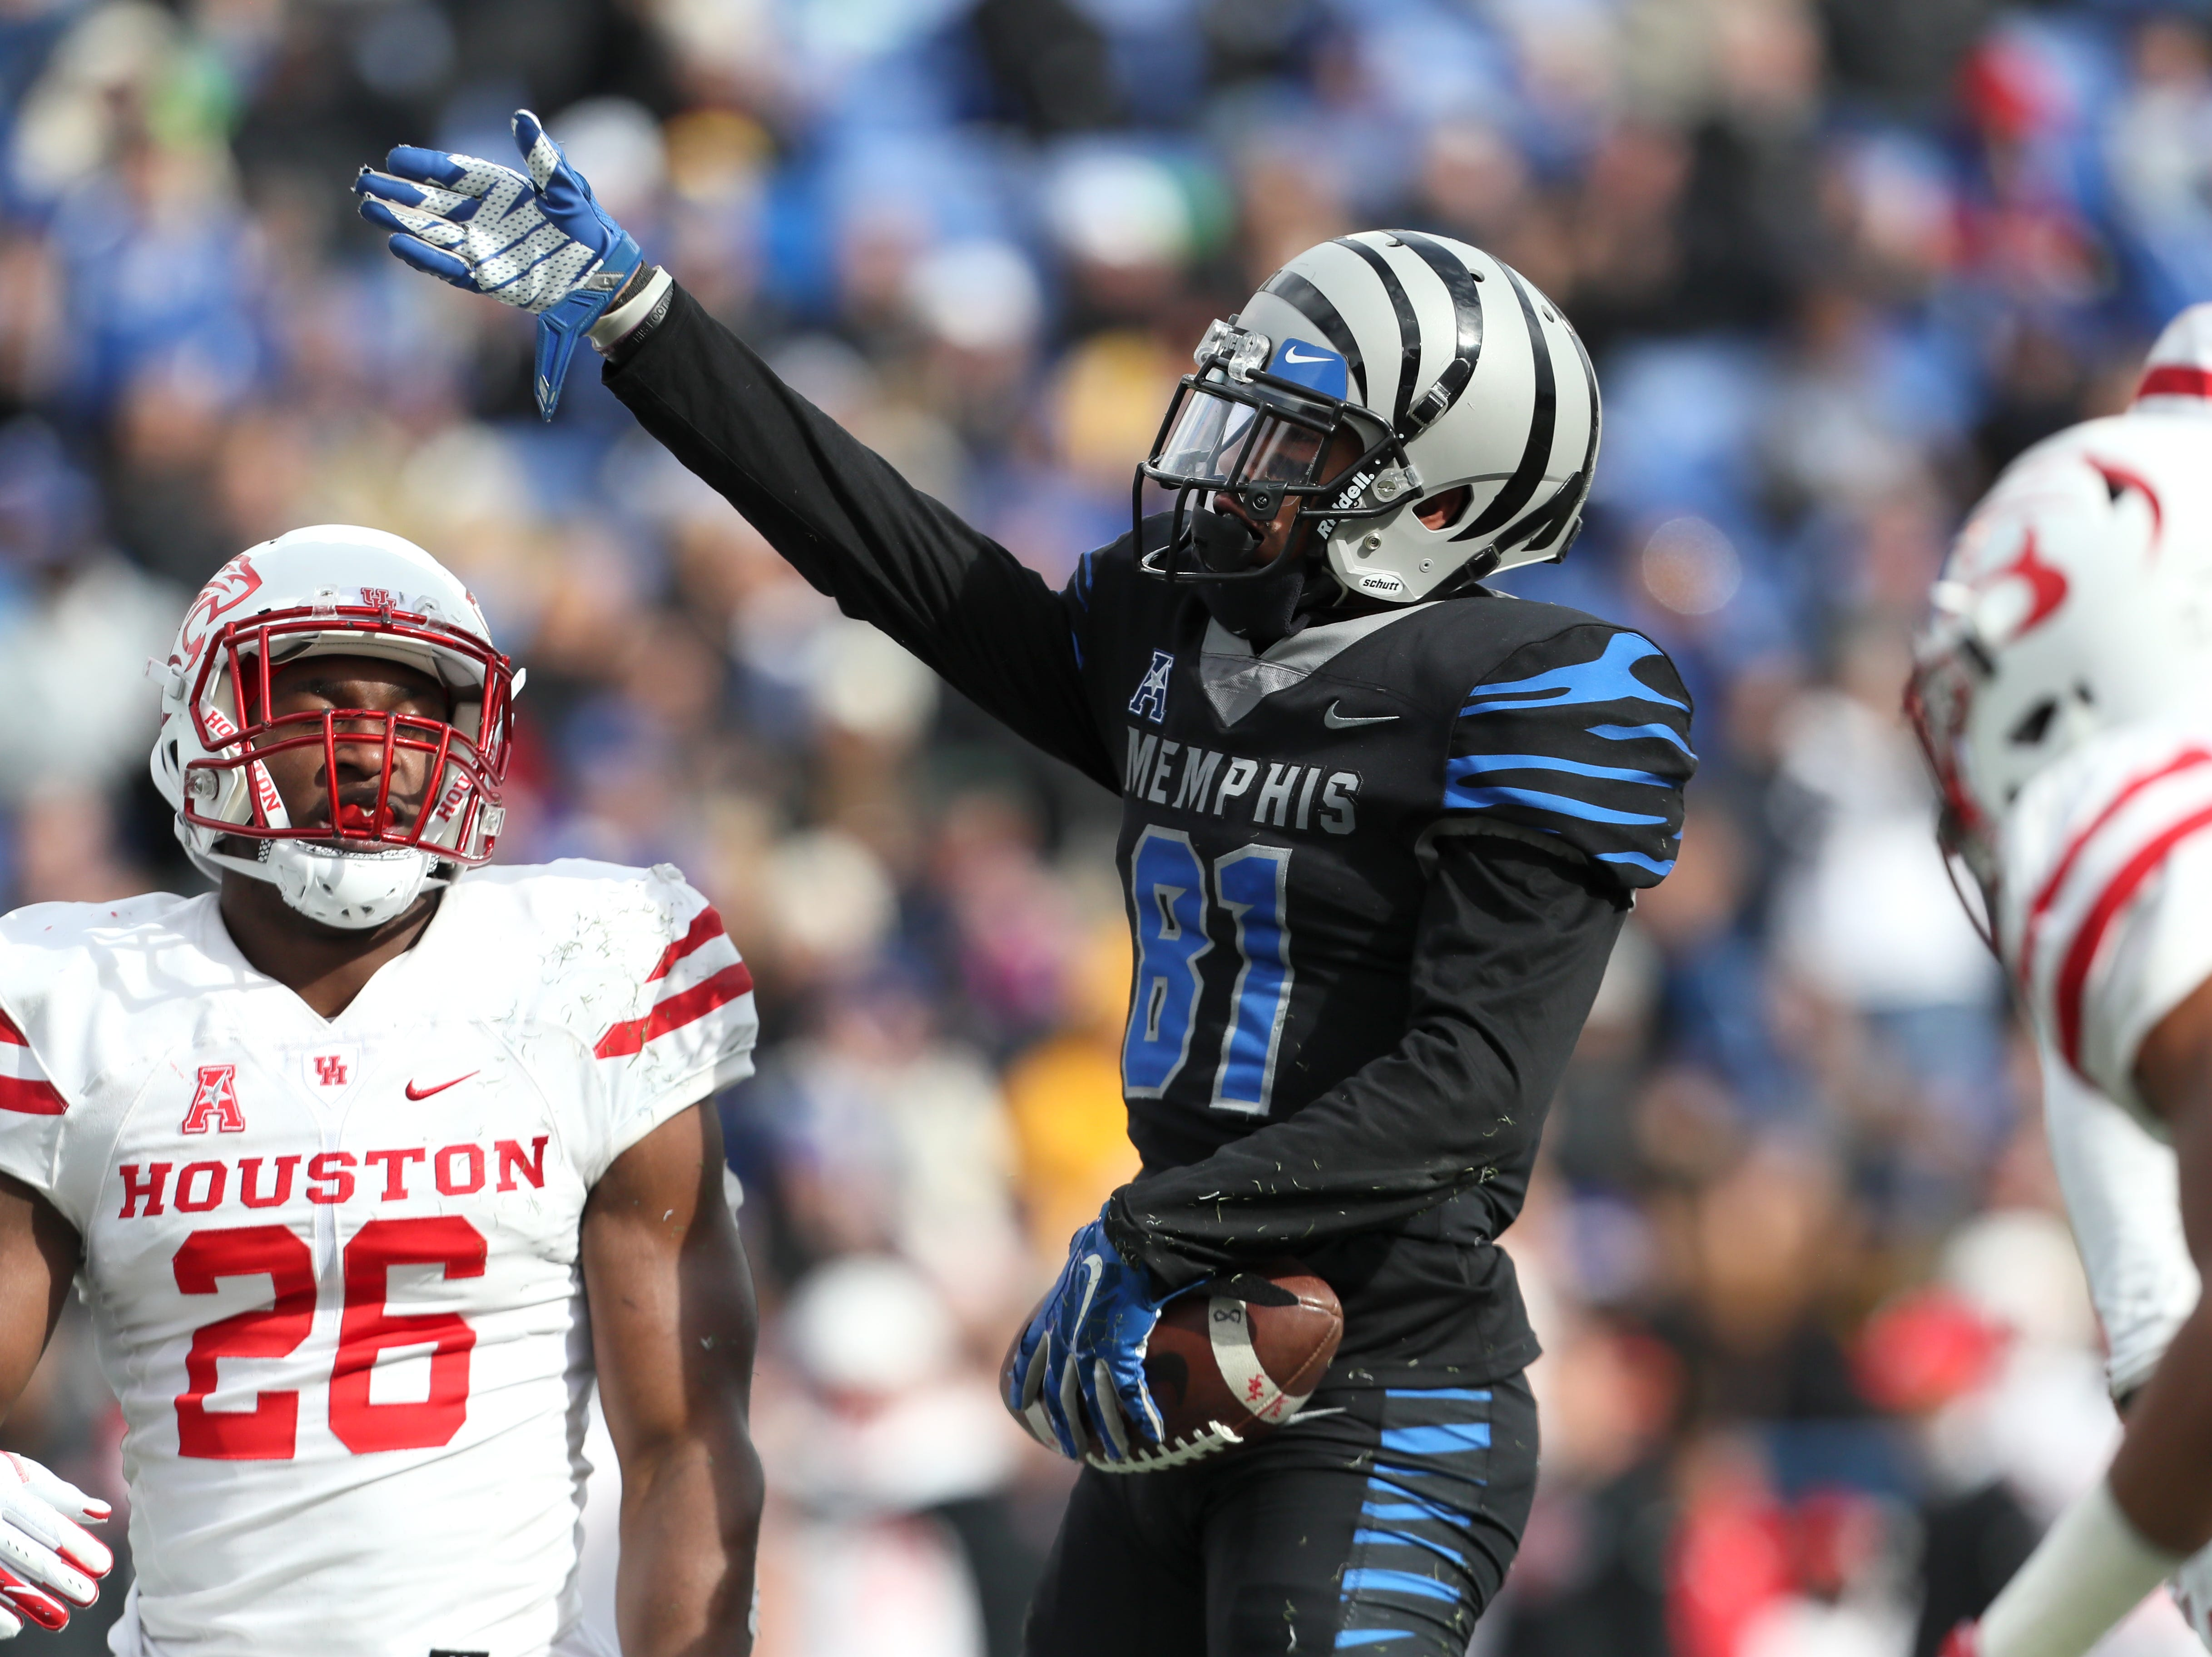 Memphis Tigers' Mechane Slade signals his own first down after a catch against the Houston Cougars at the Liberty Bowl on Friday, Nov. 23, 2018.